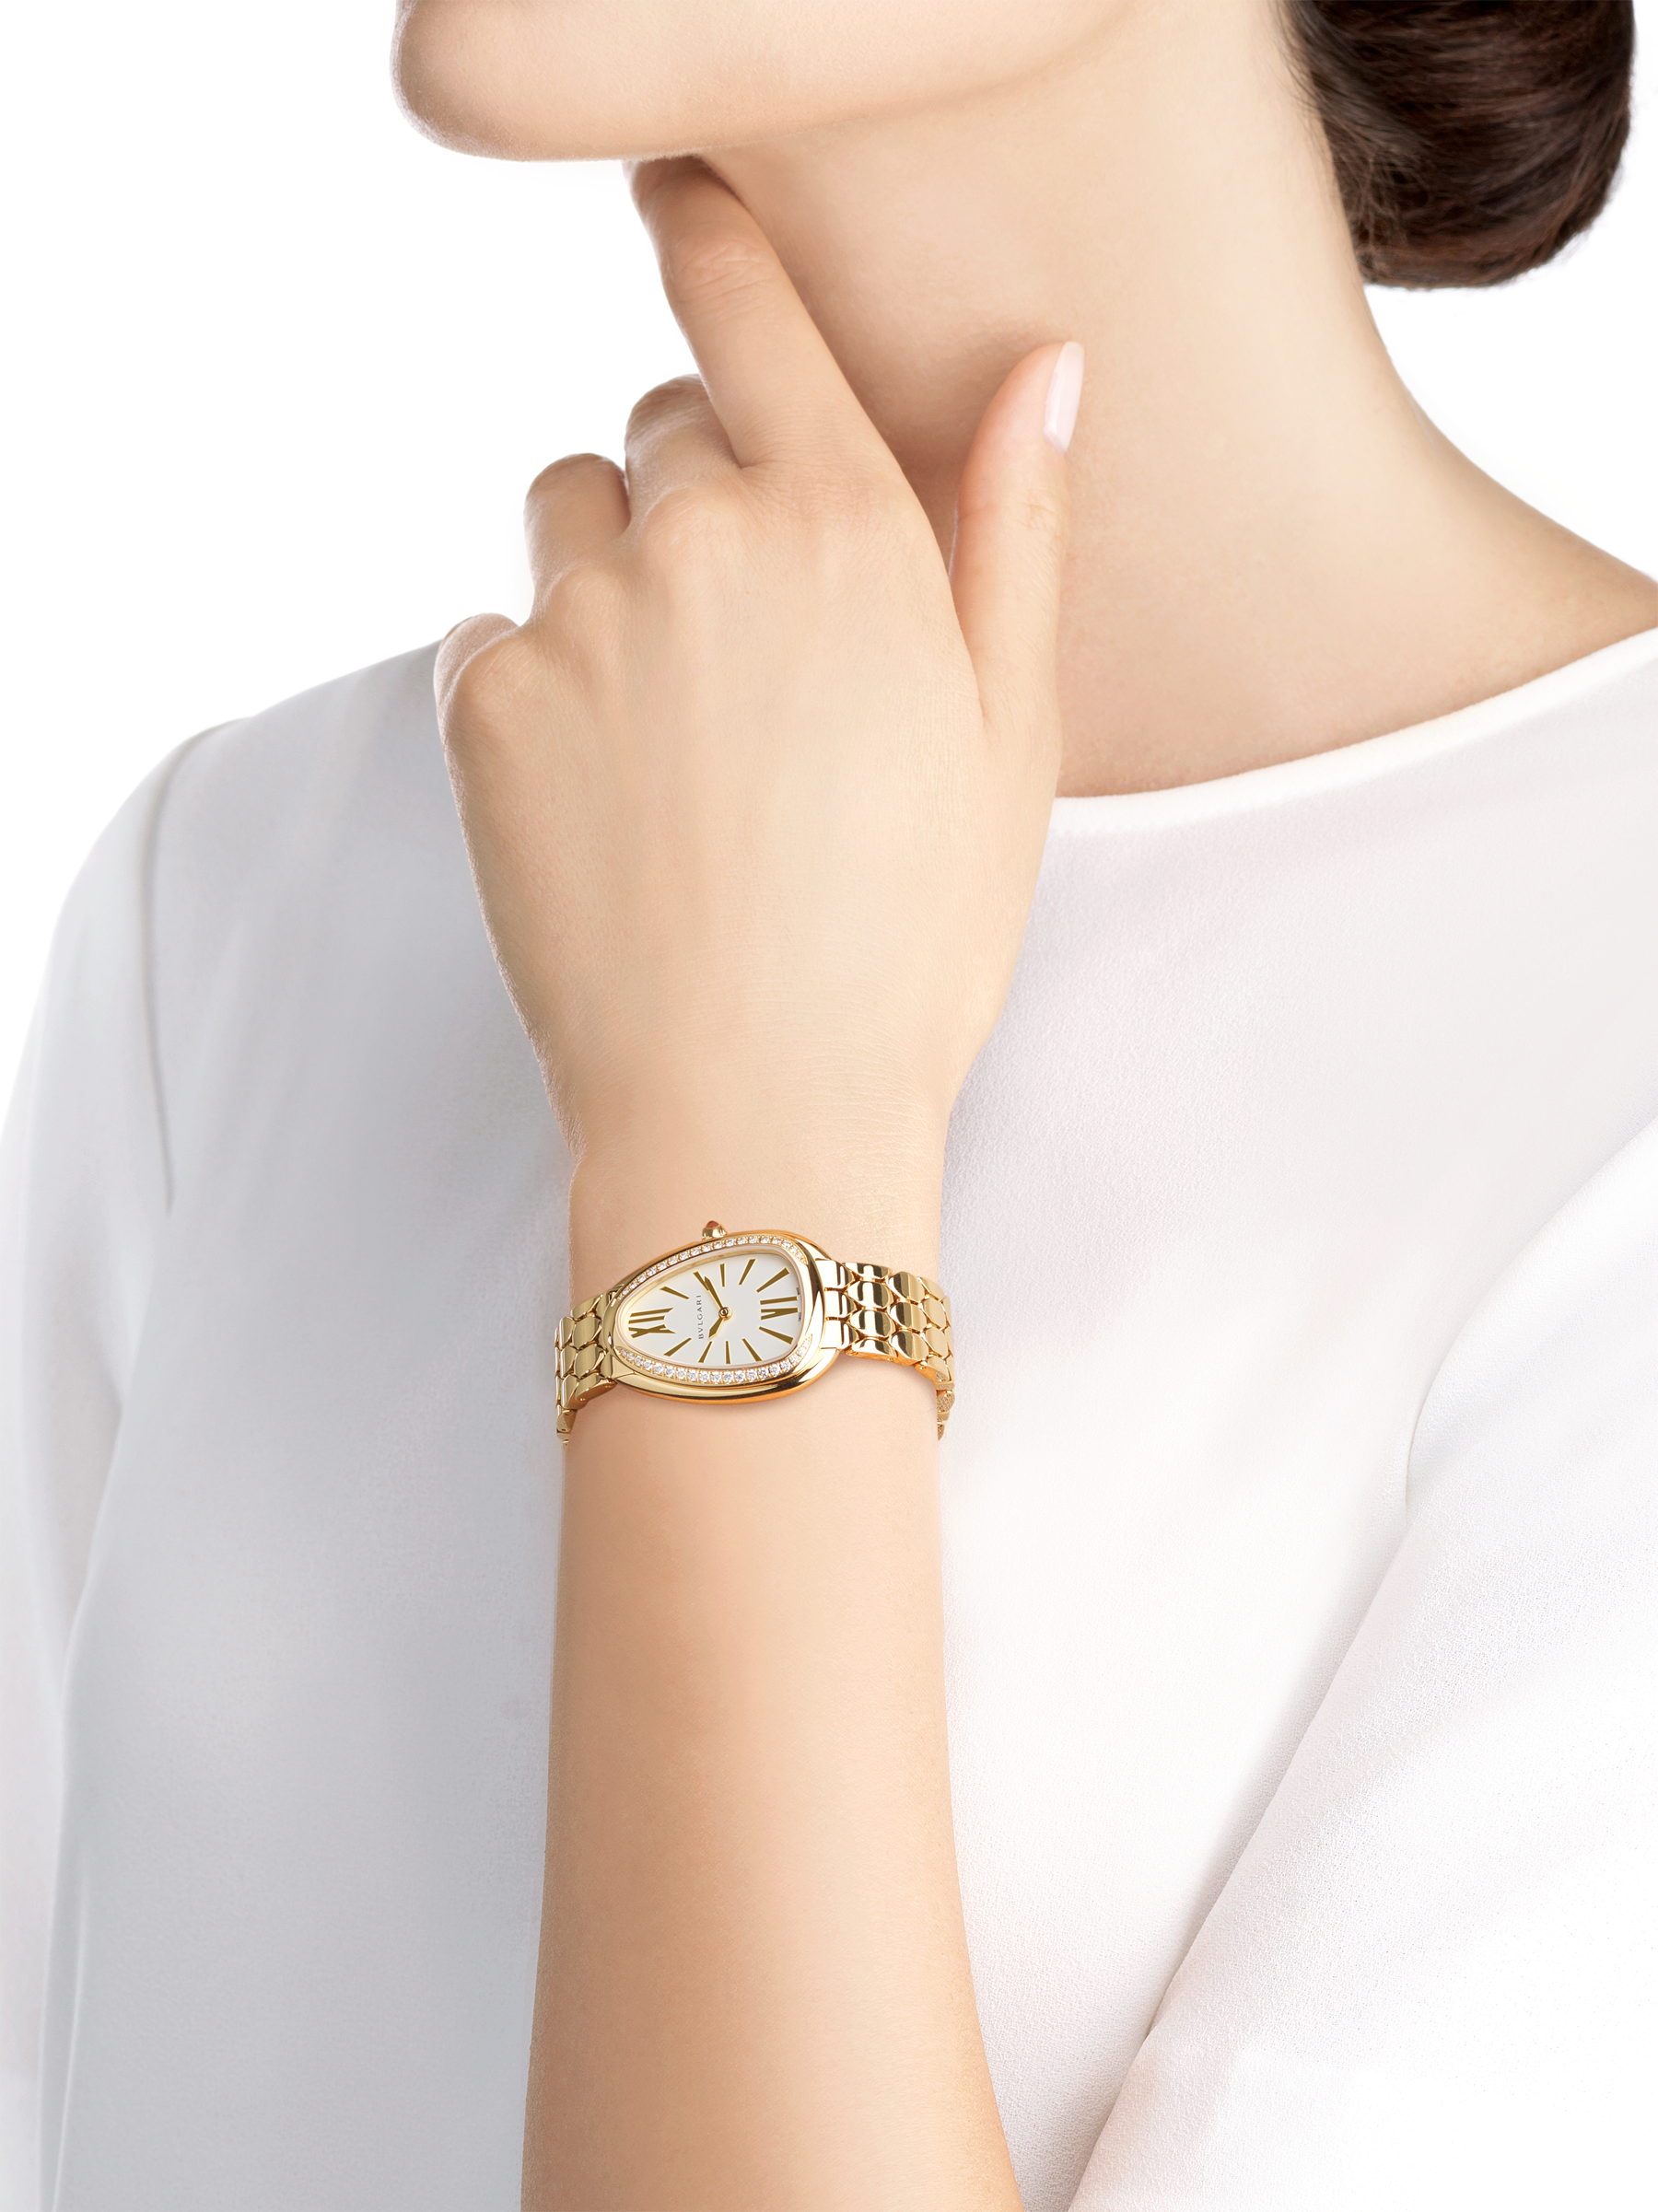 Serpenti Seduttori watch with 18 kt yellow gold case, 18 kt yellow gold bracelet, 18 kt yellow gold bezel set with diamonds and a white silver opaline dial. 103147 image 4